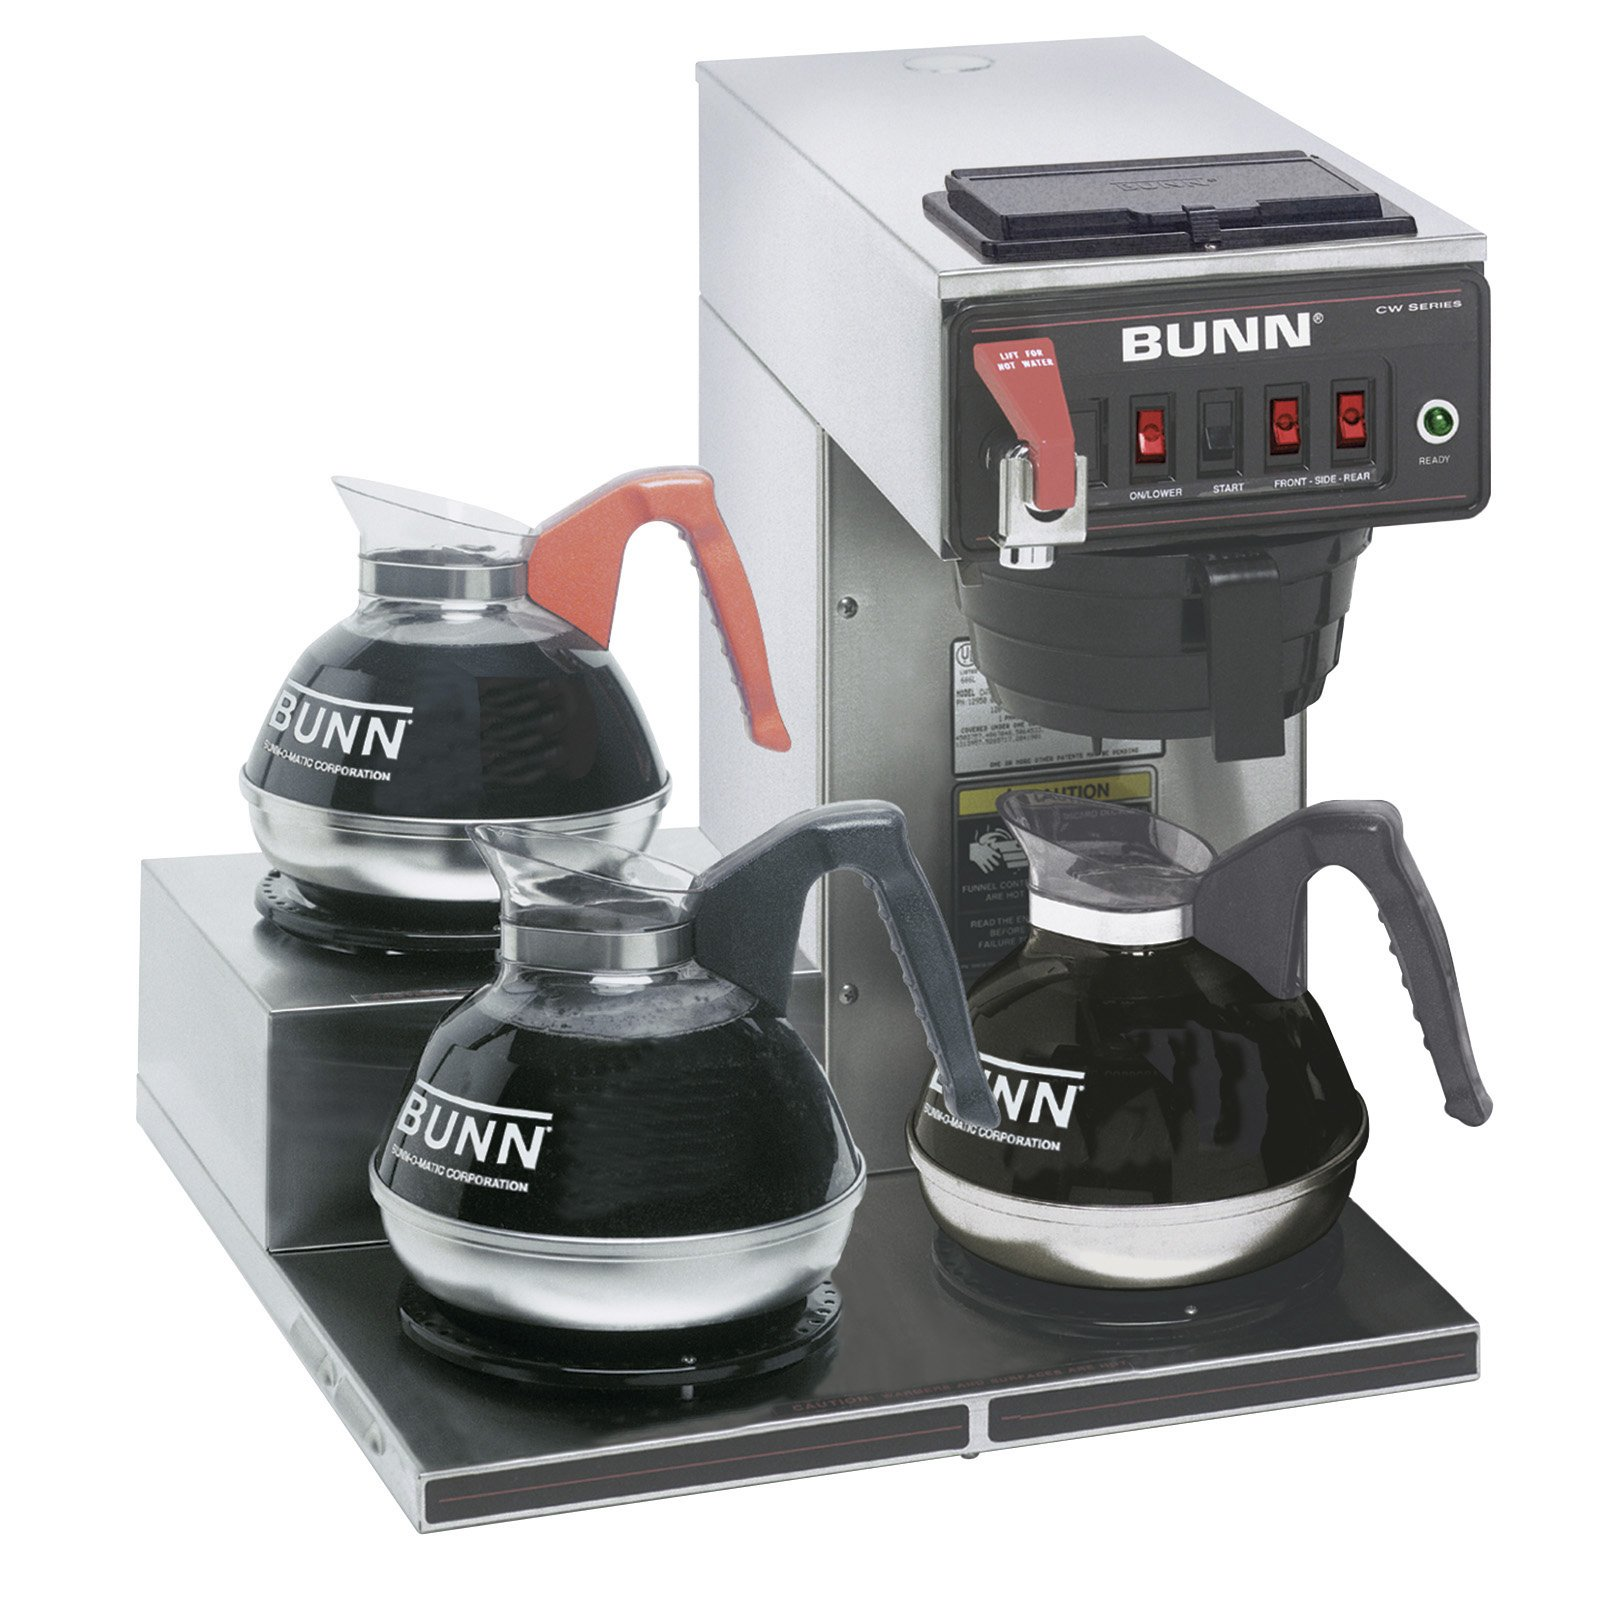 BUNN 12950.0298 CWTF15-3 3L Left Stainless 12-Cup Automatic Commercial Coffee Brewer with 3 Warmers, Black (120V)